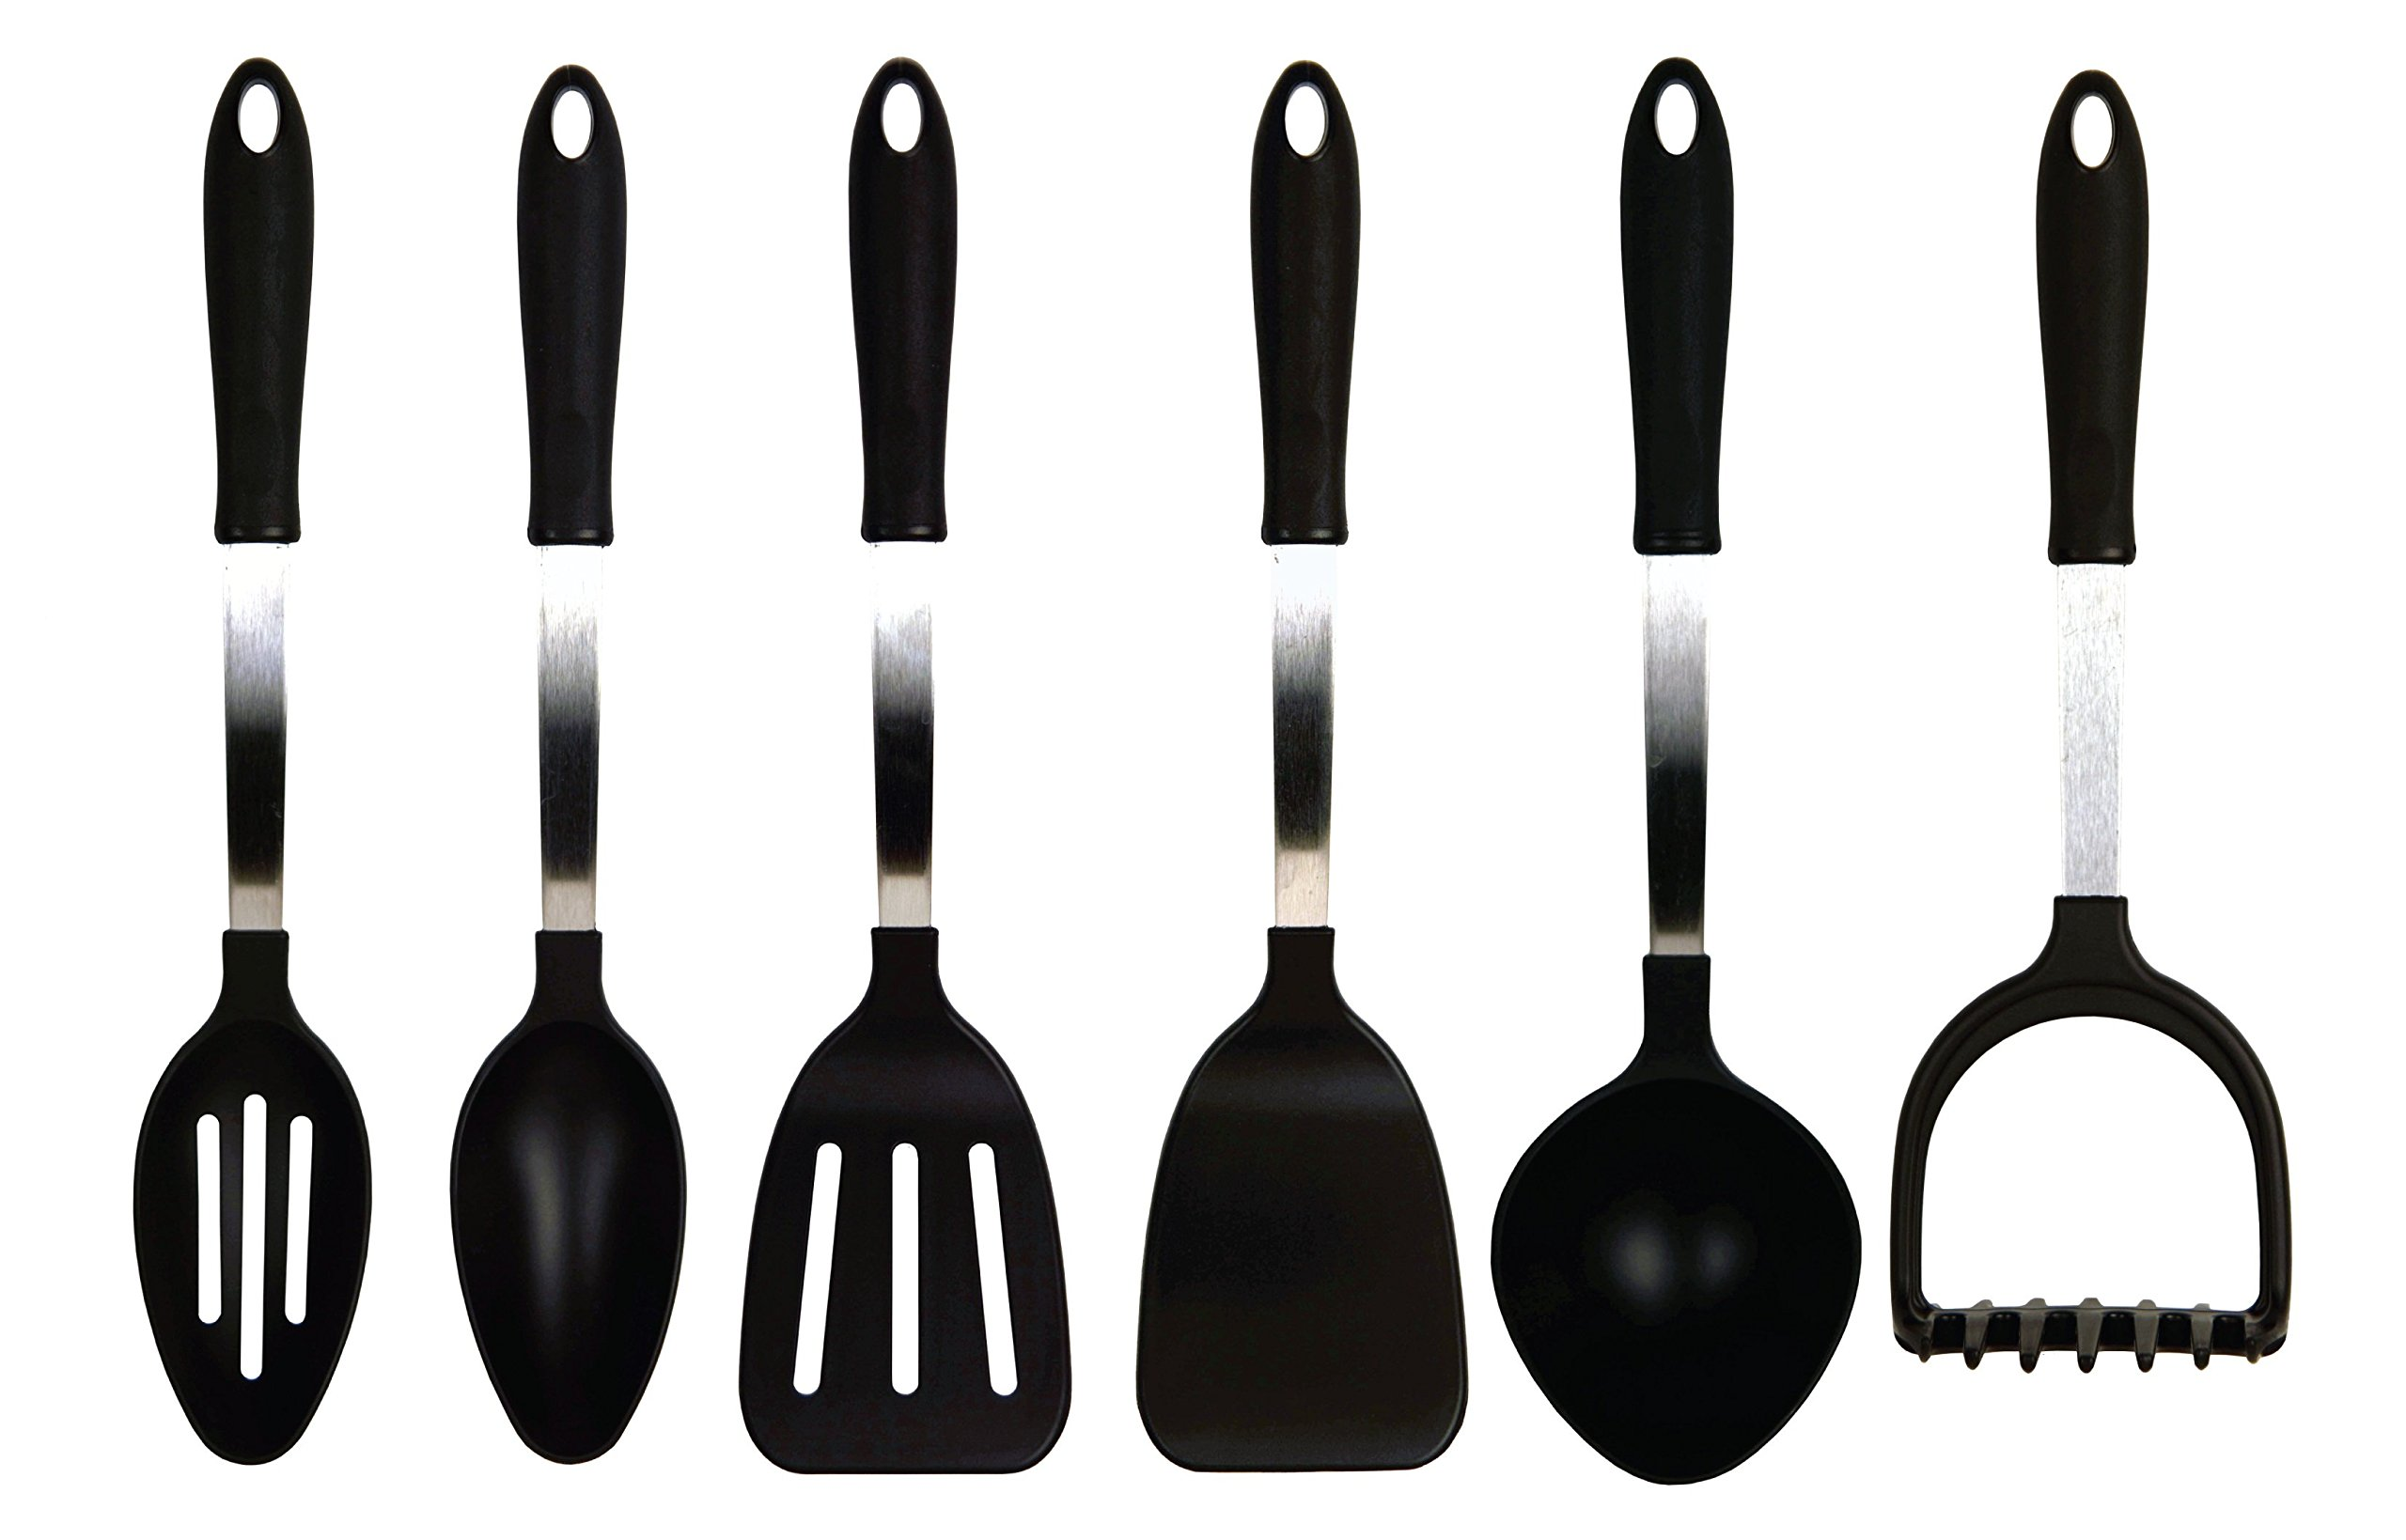 Tailor Made Products 6 Piece Stainless Steel Nylon Utensil Set, Black/Silver